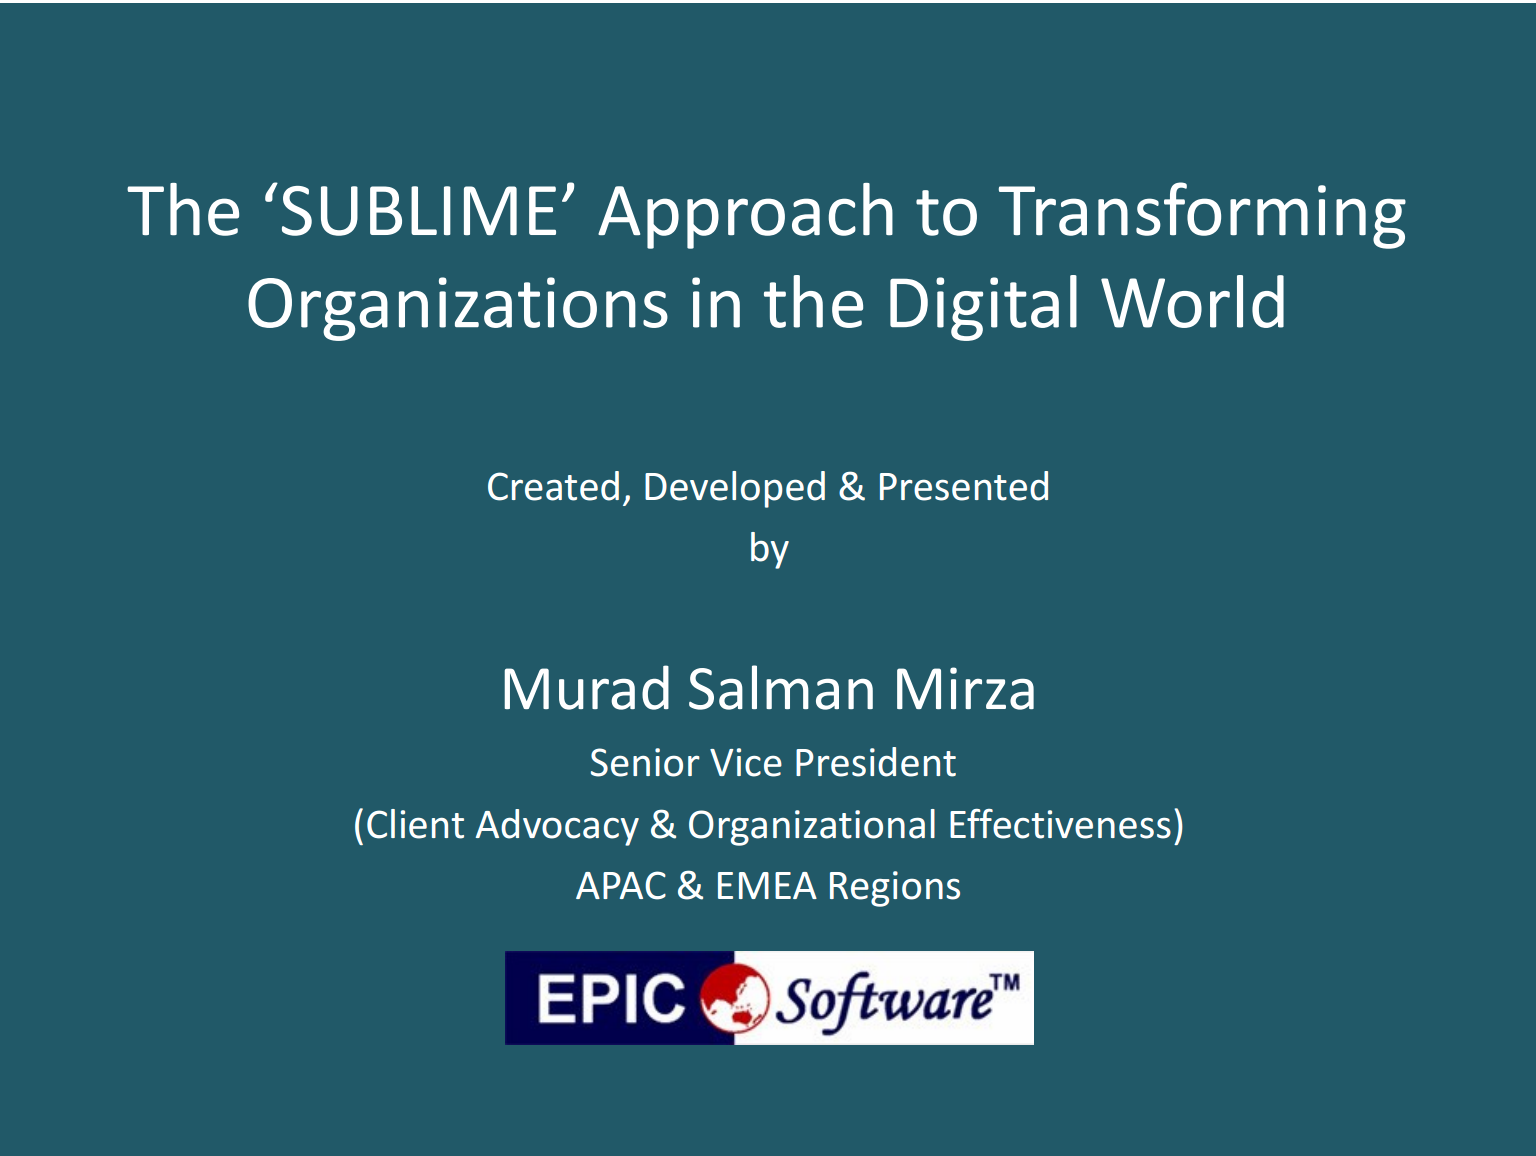 The 'SUBLIME' Approach to Transformating Organizations in the Digital World